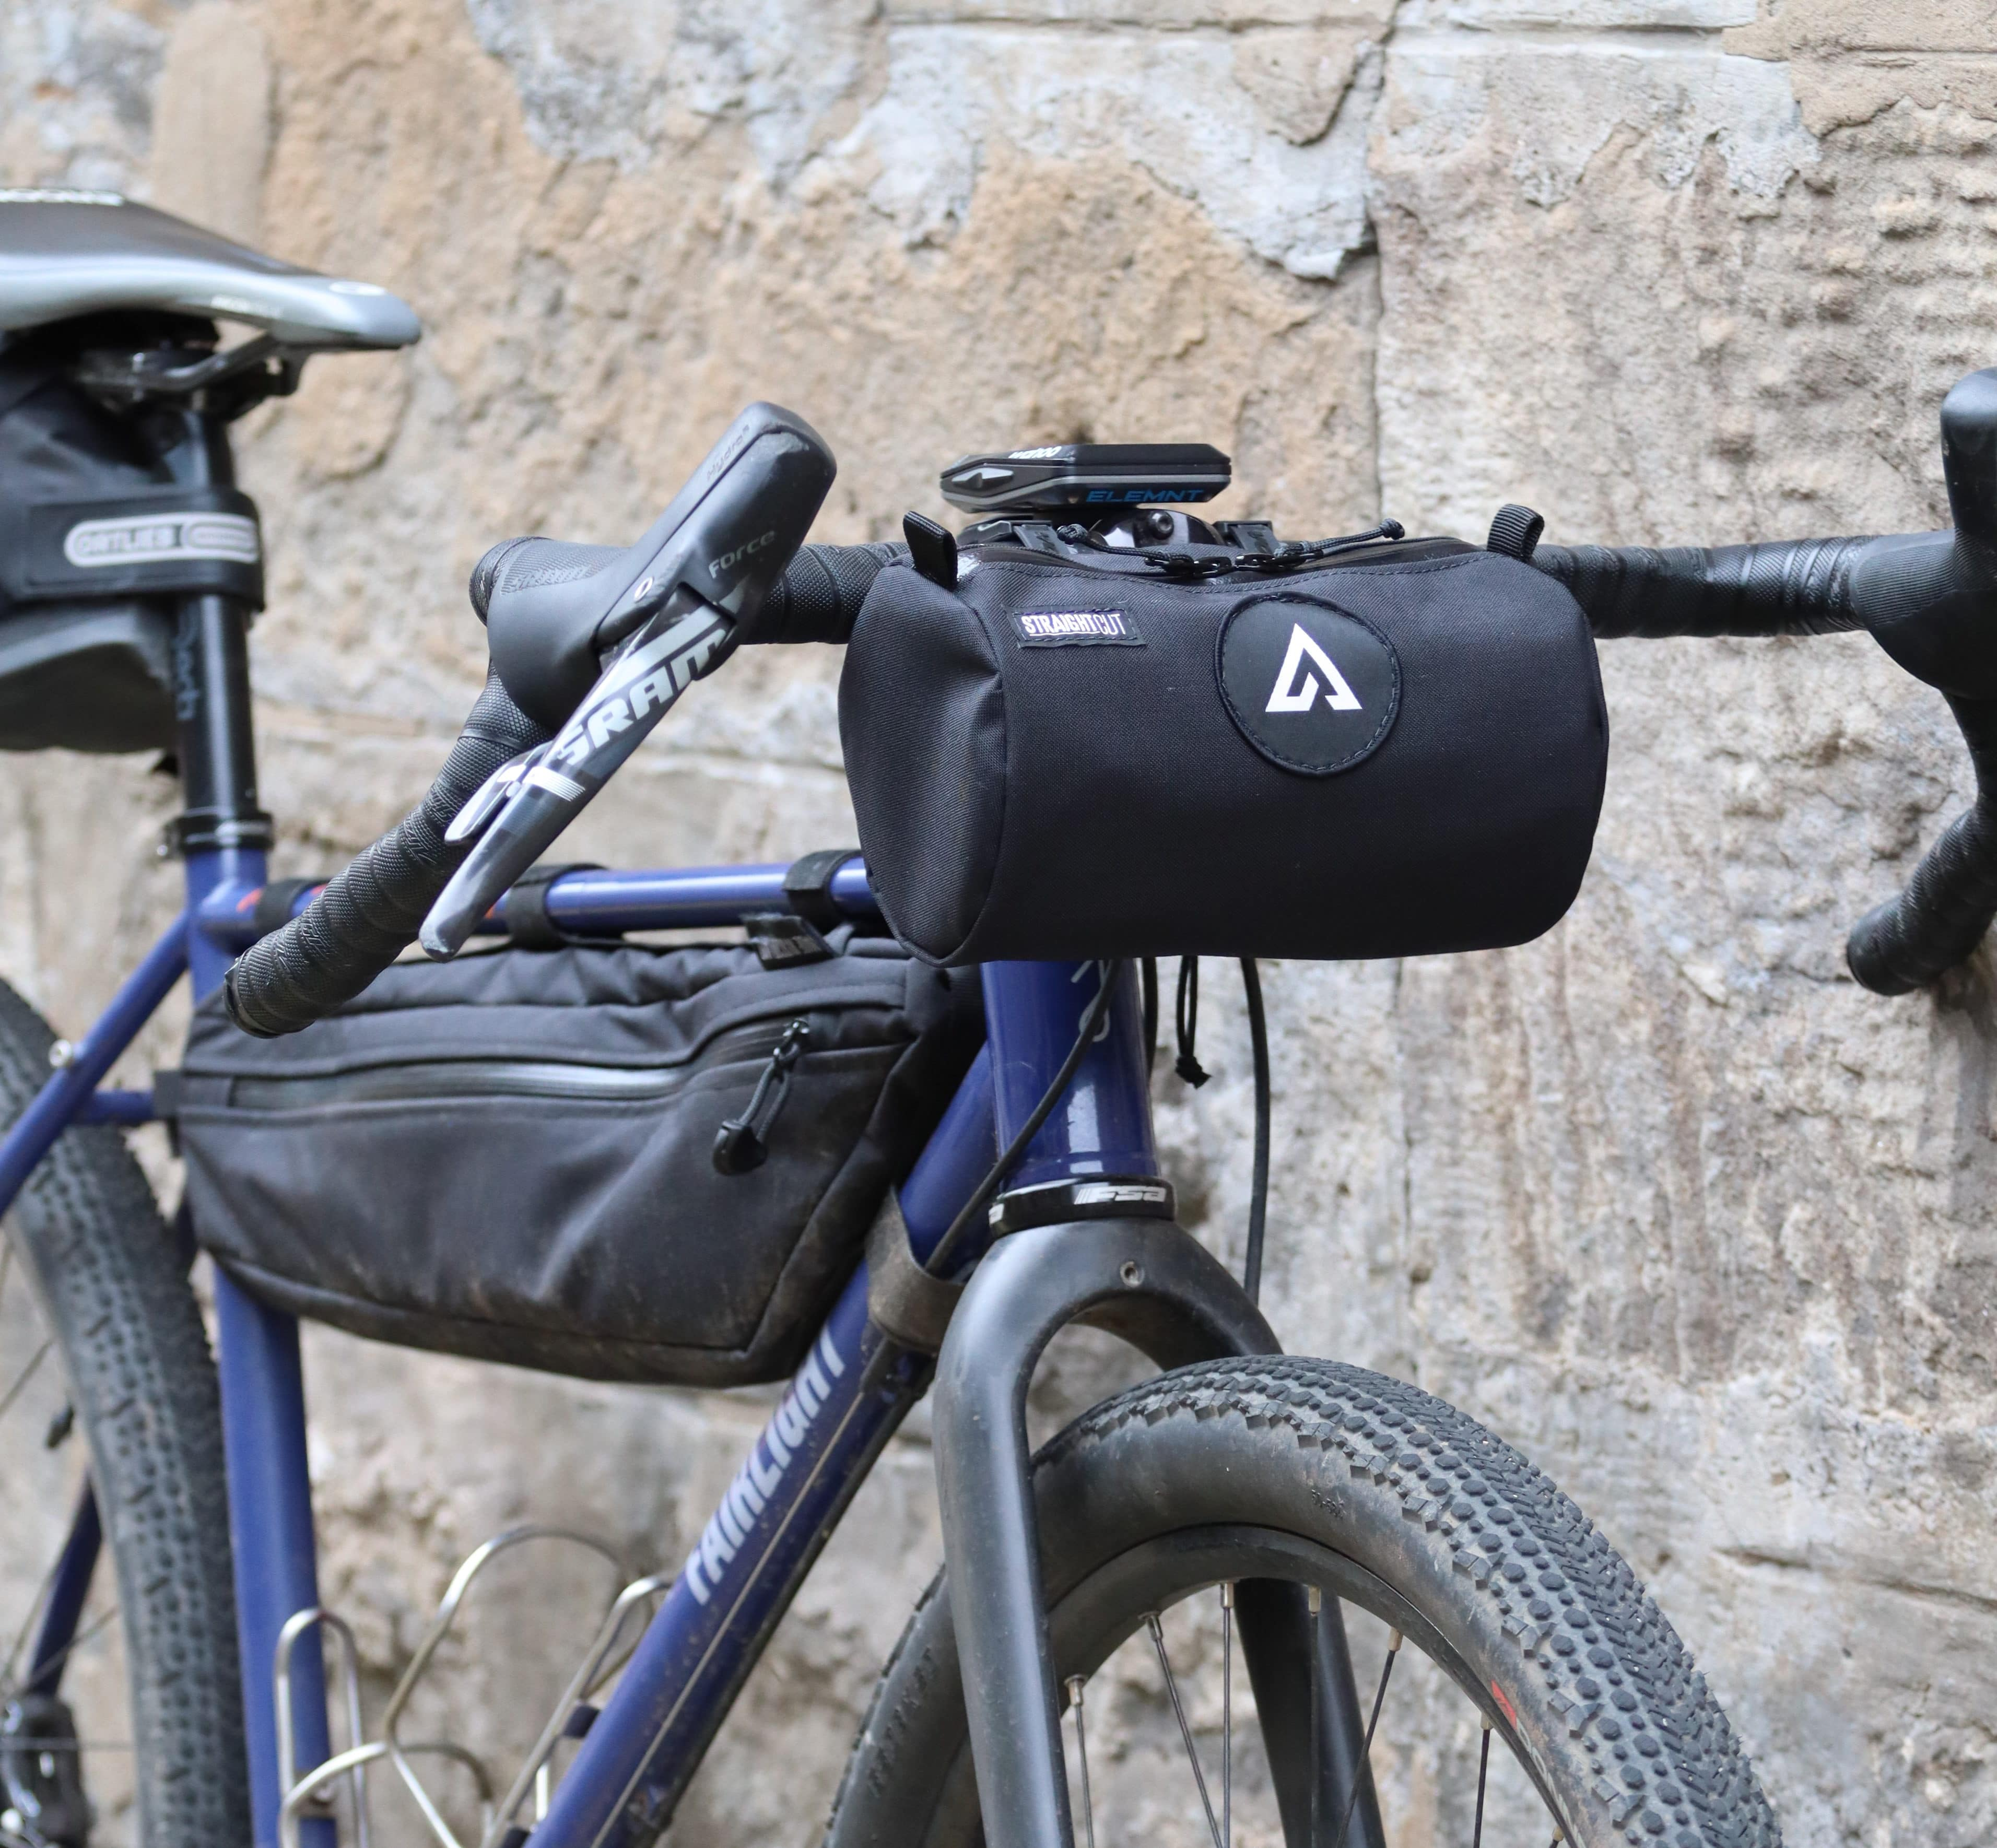 One-off ADVNTR Bagel Bag mounted to the handlebars of a Fairlight Secan